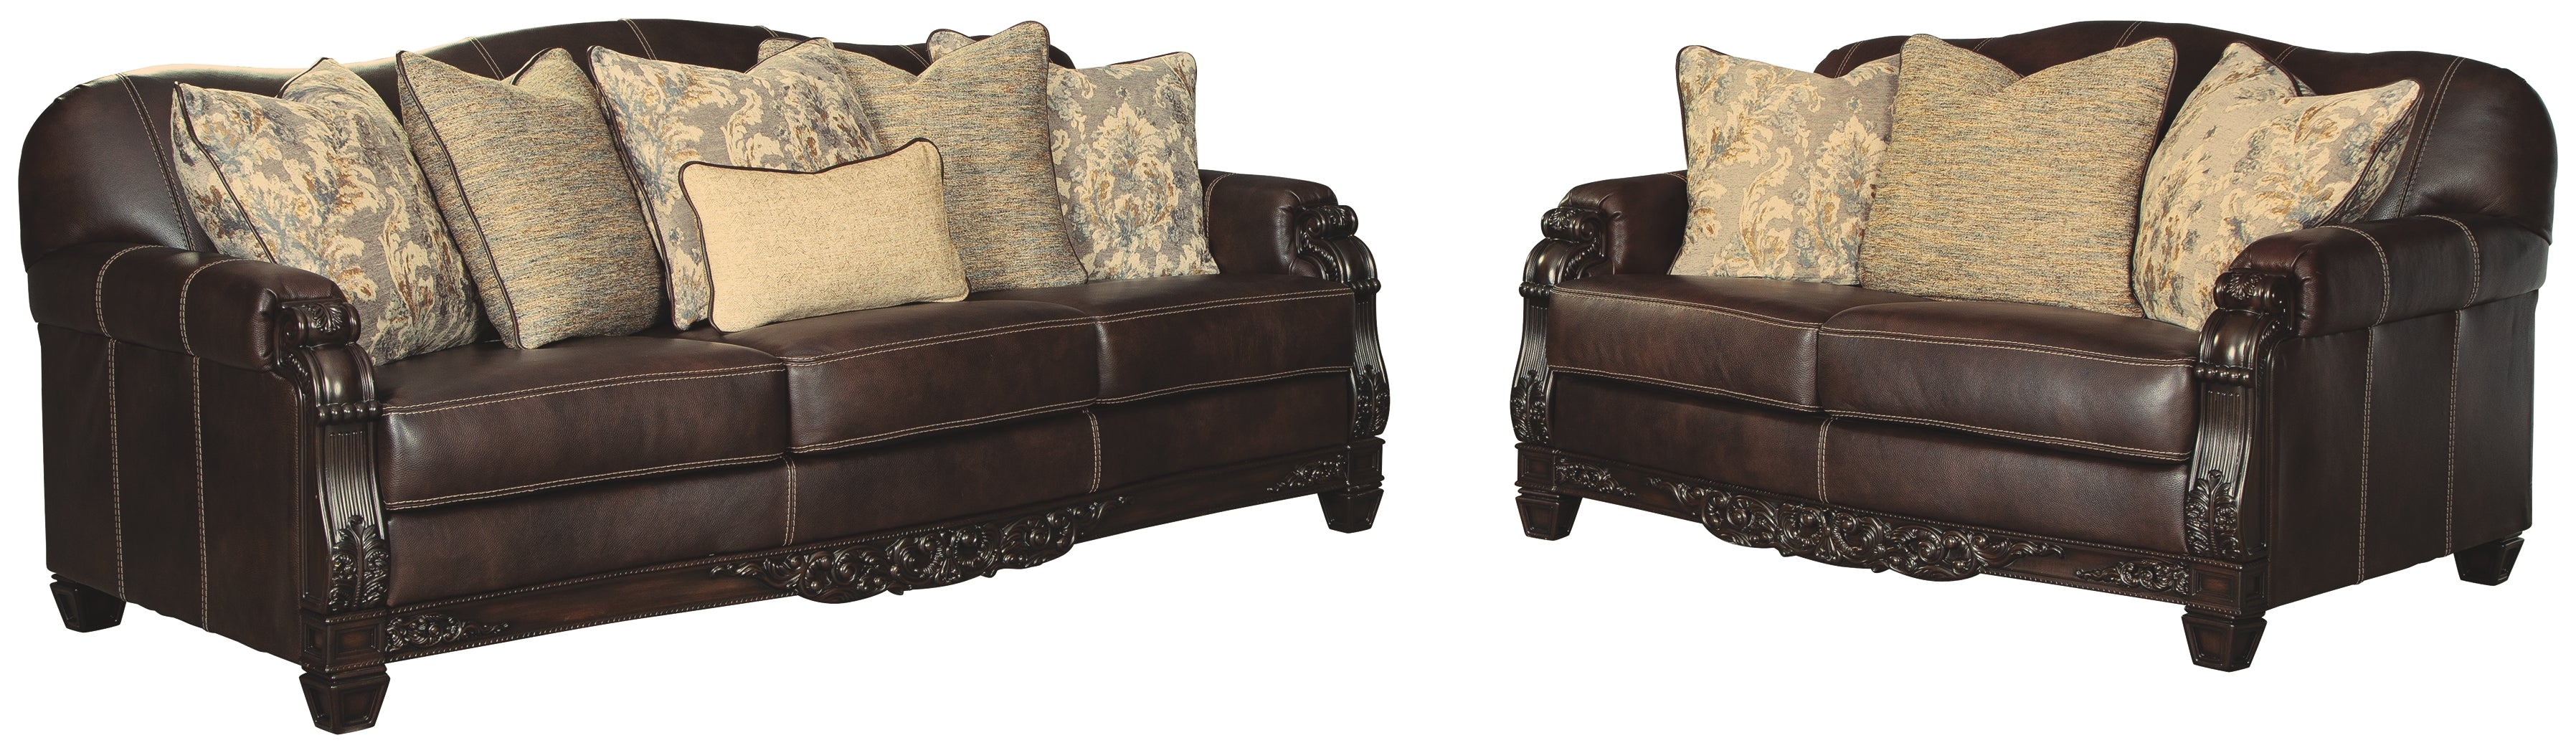 Embrook Signature Design 2-Piece Upholstery Package